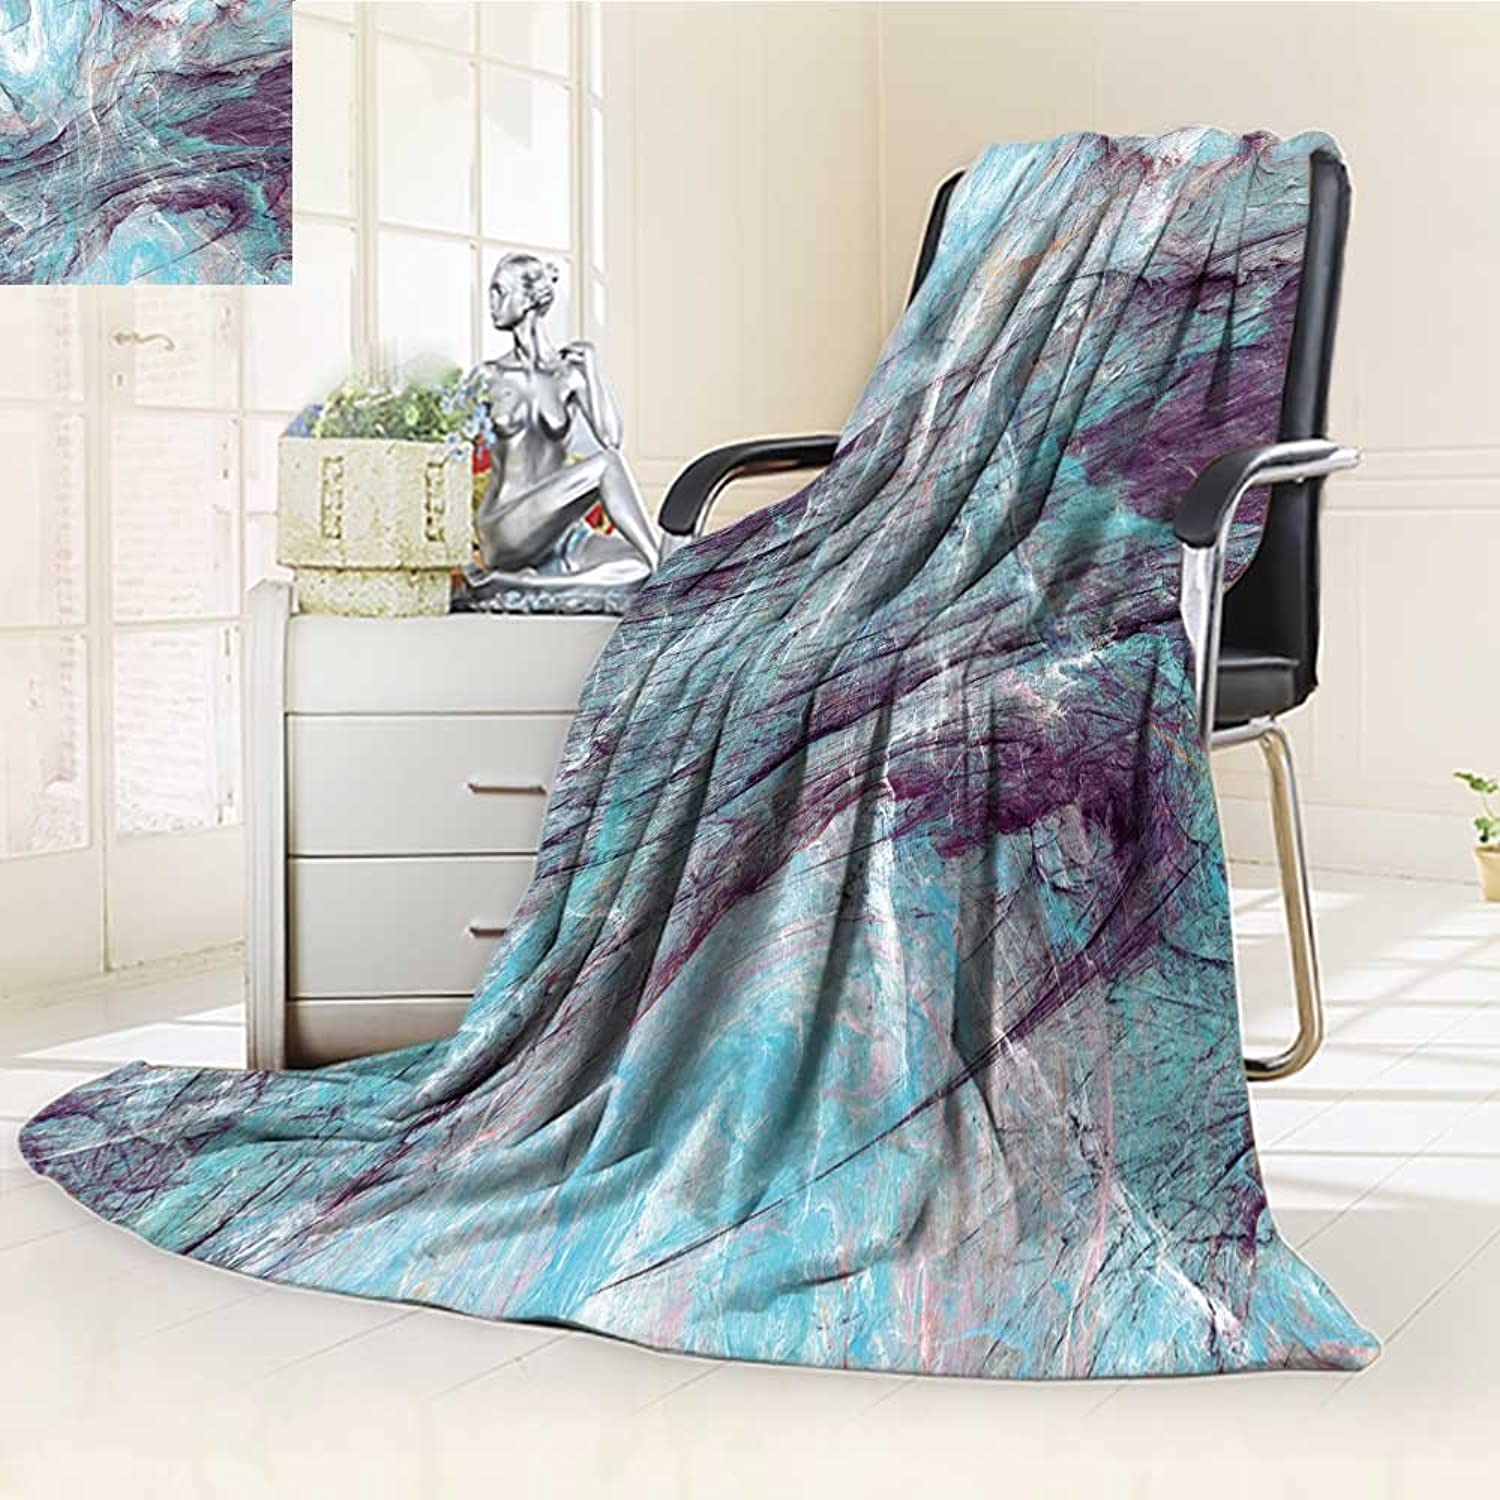 Decorative Throw Blanket UltraPlush Comfort Abstract Painting bluee color Texture Bright Artistic Background Cold Dynamic pa Soft, colorful, Oversized   Home, Couch, Outdoor, Travel Use(60 x 50 )